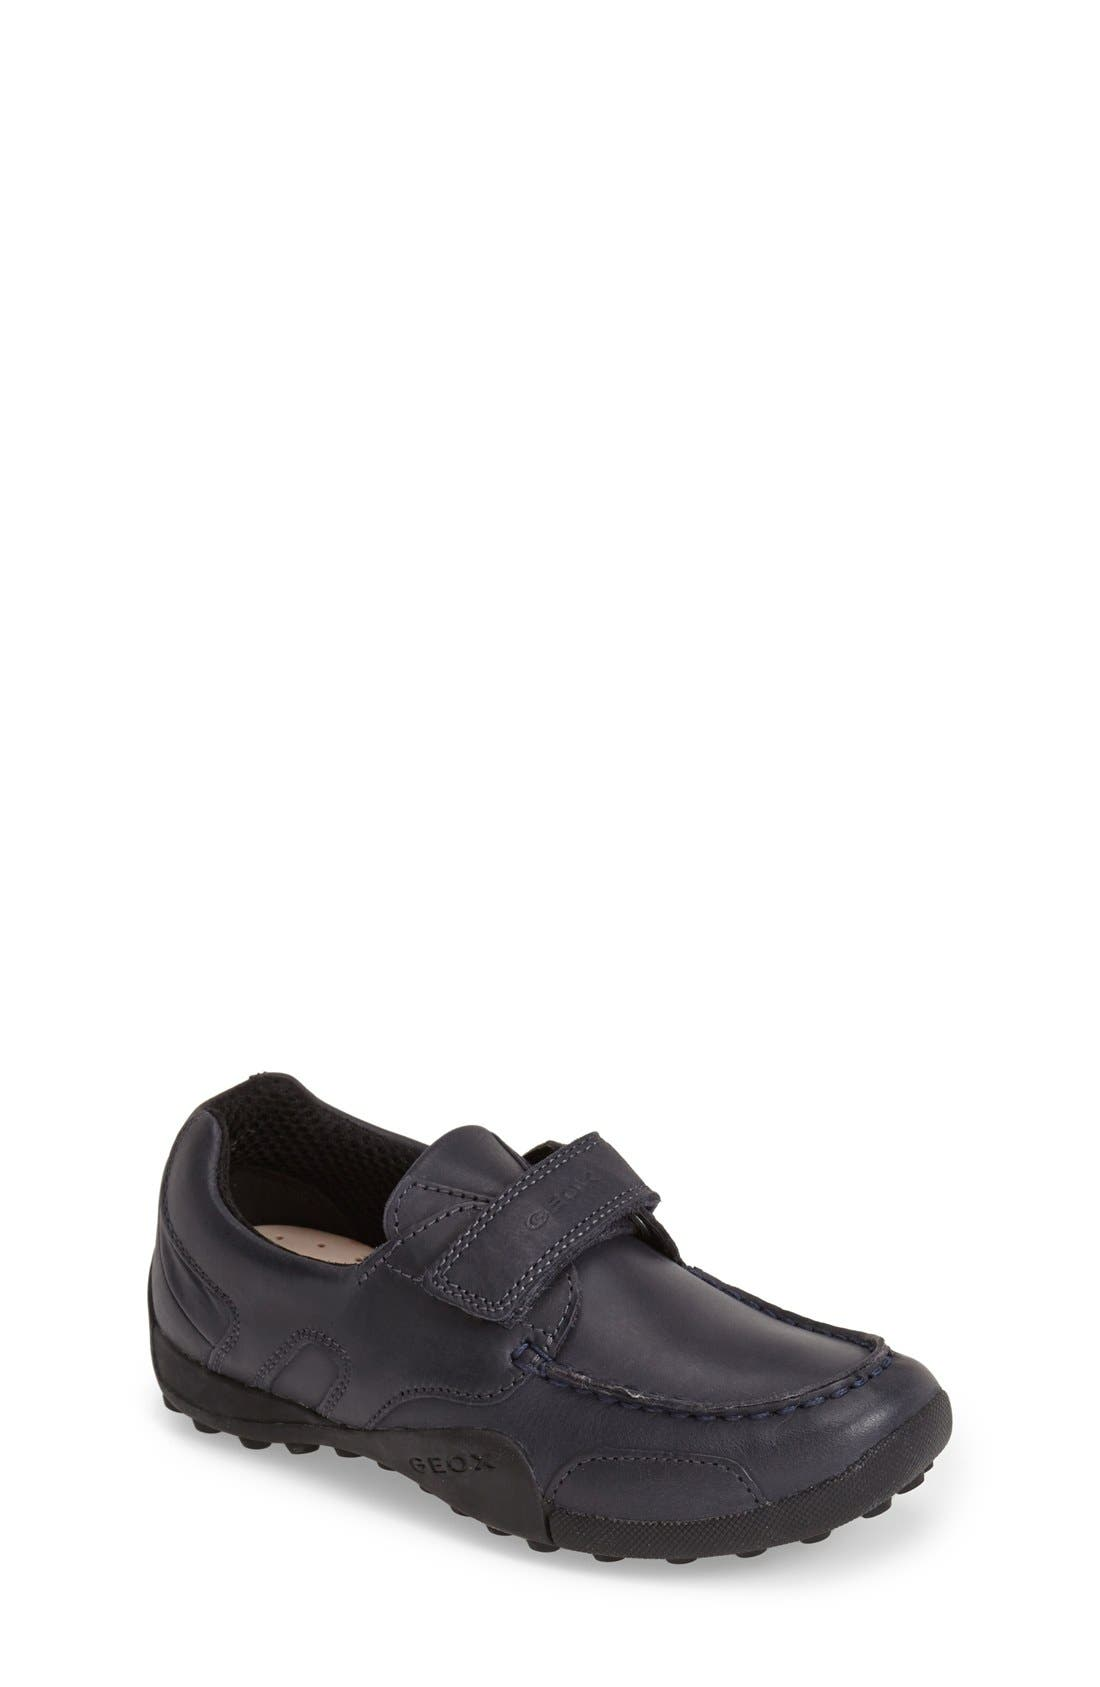 'Snake Moc 2' Leather Loafer,                             Main thumbnail 1, color,                             NAVY